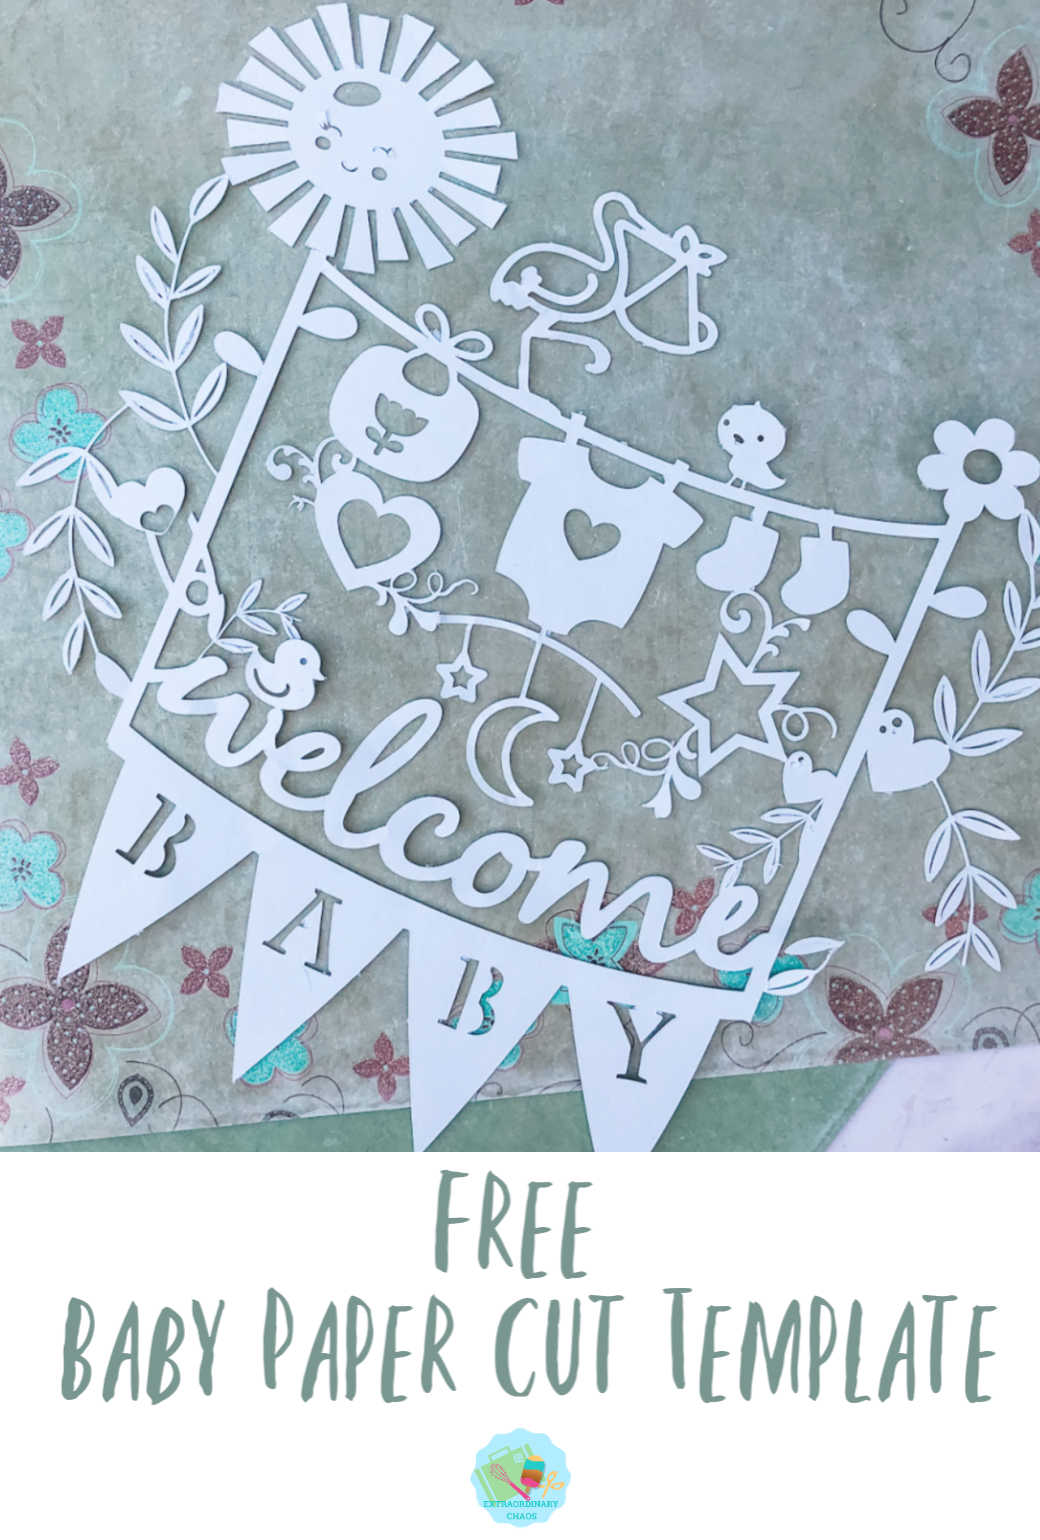 Free paper cut template for Cricut to make to sell or for gifts